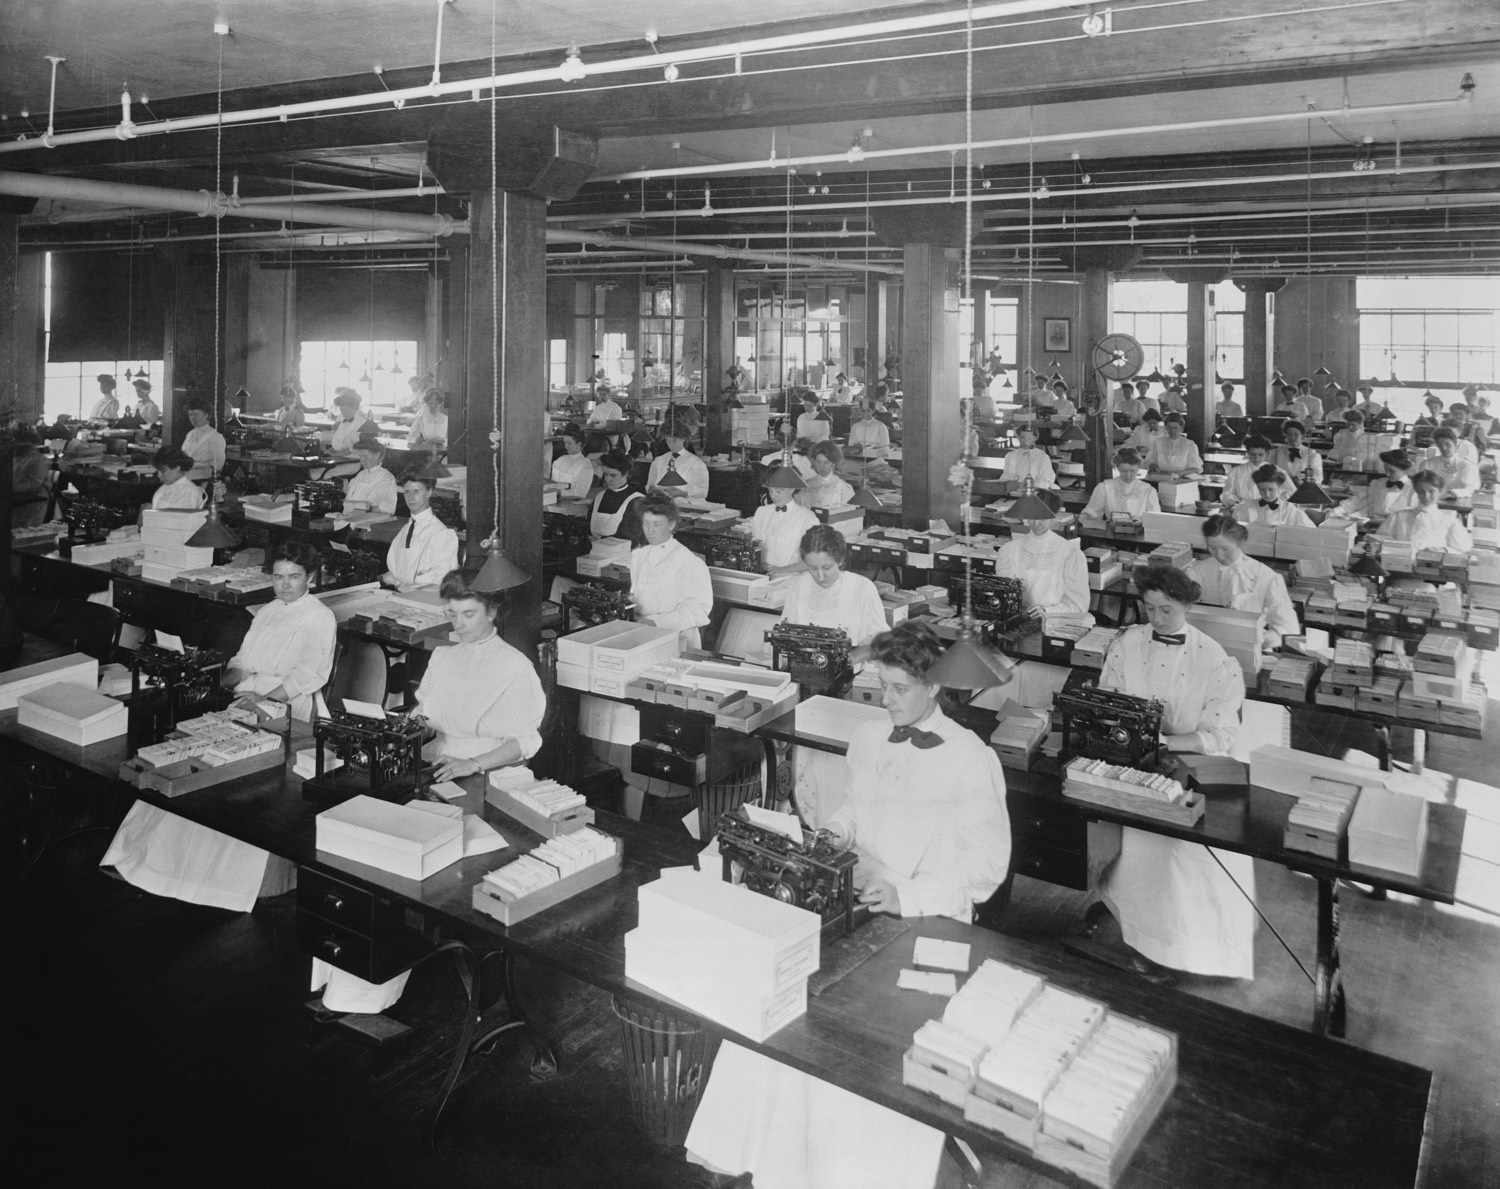 Women at work in the office, 1907